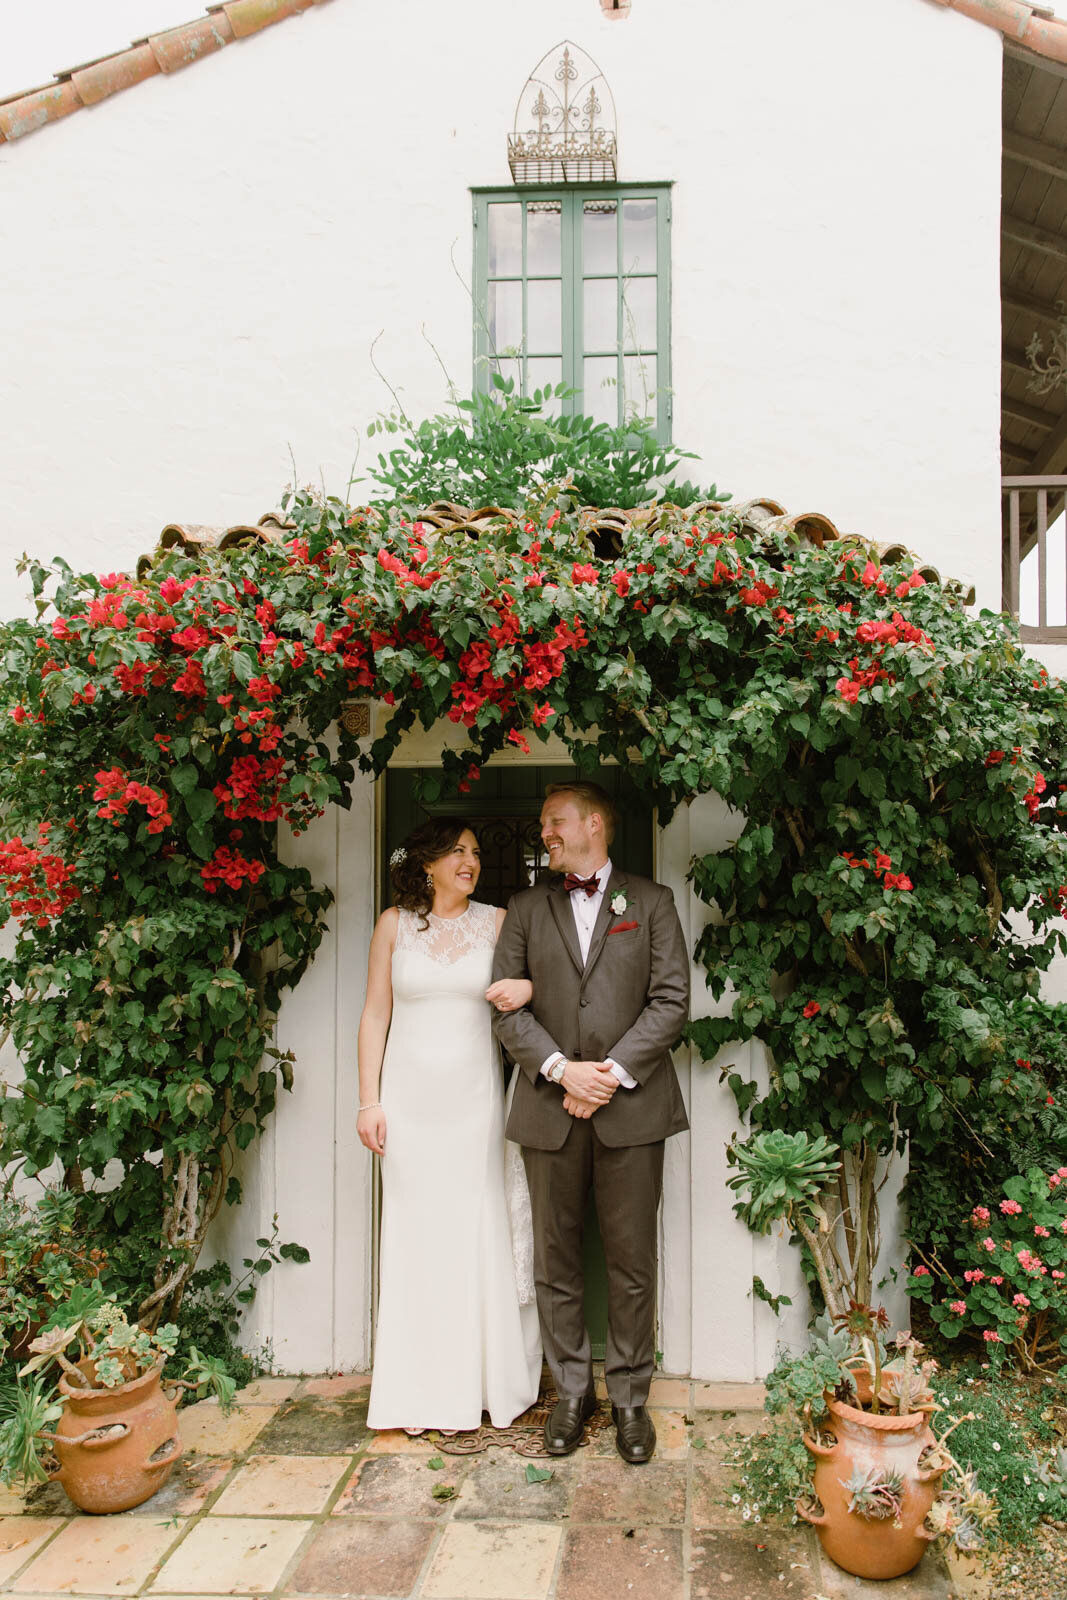 a bride and groom look at each other smiling, their arms linked, while standing under an arch of red flowers in front of a building with white walls